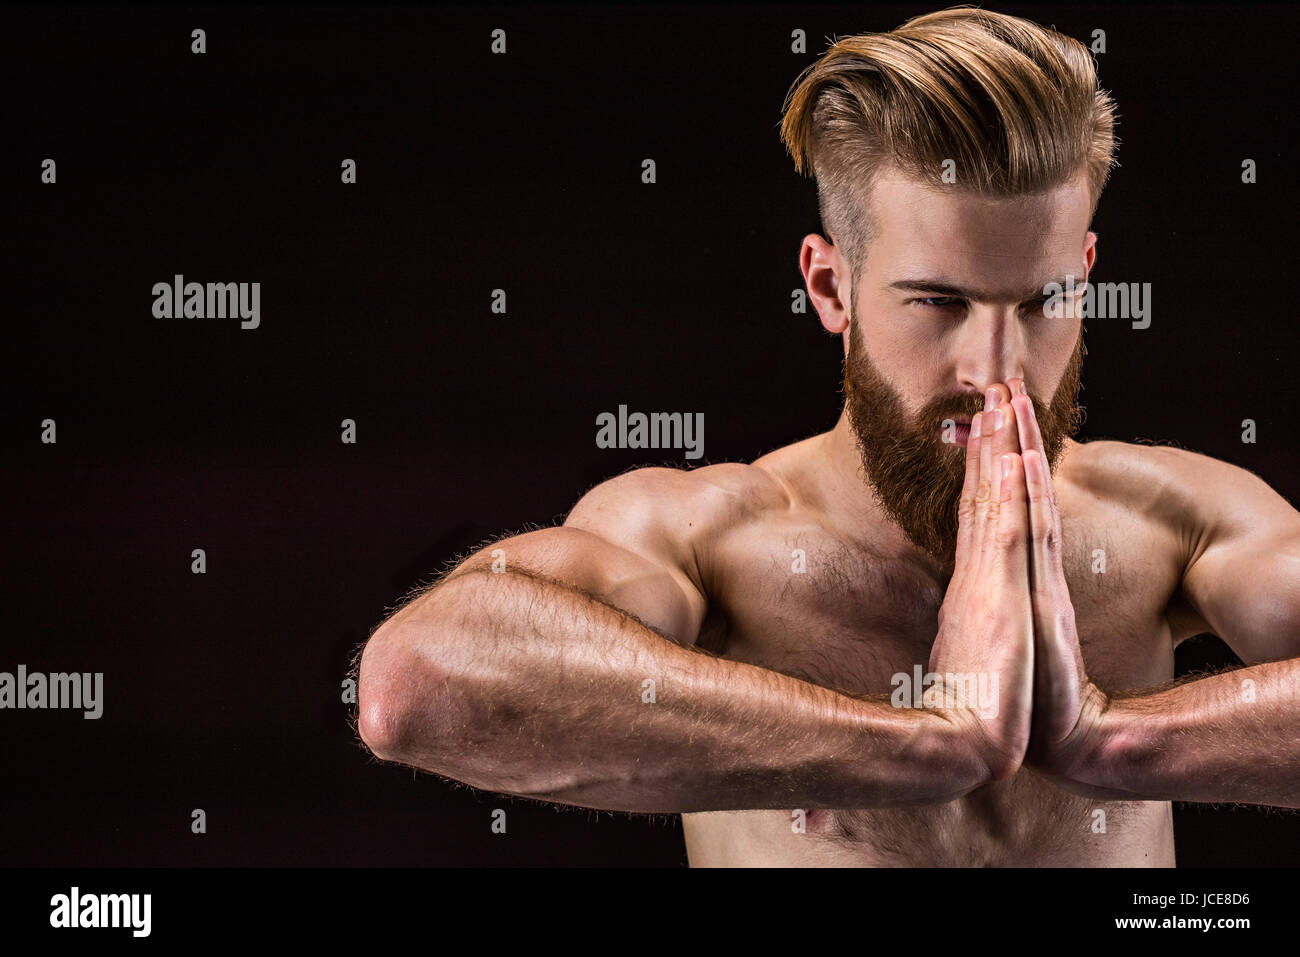 Bodybuilder Pose Black High Resolution Stock Photography and